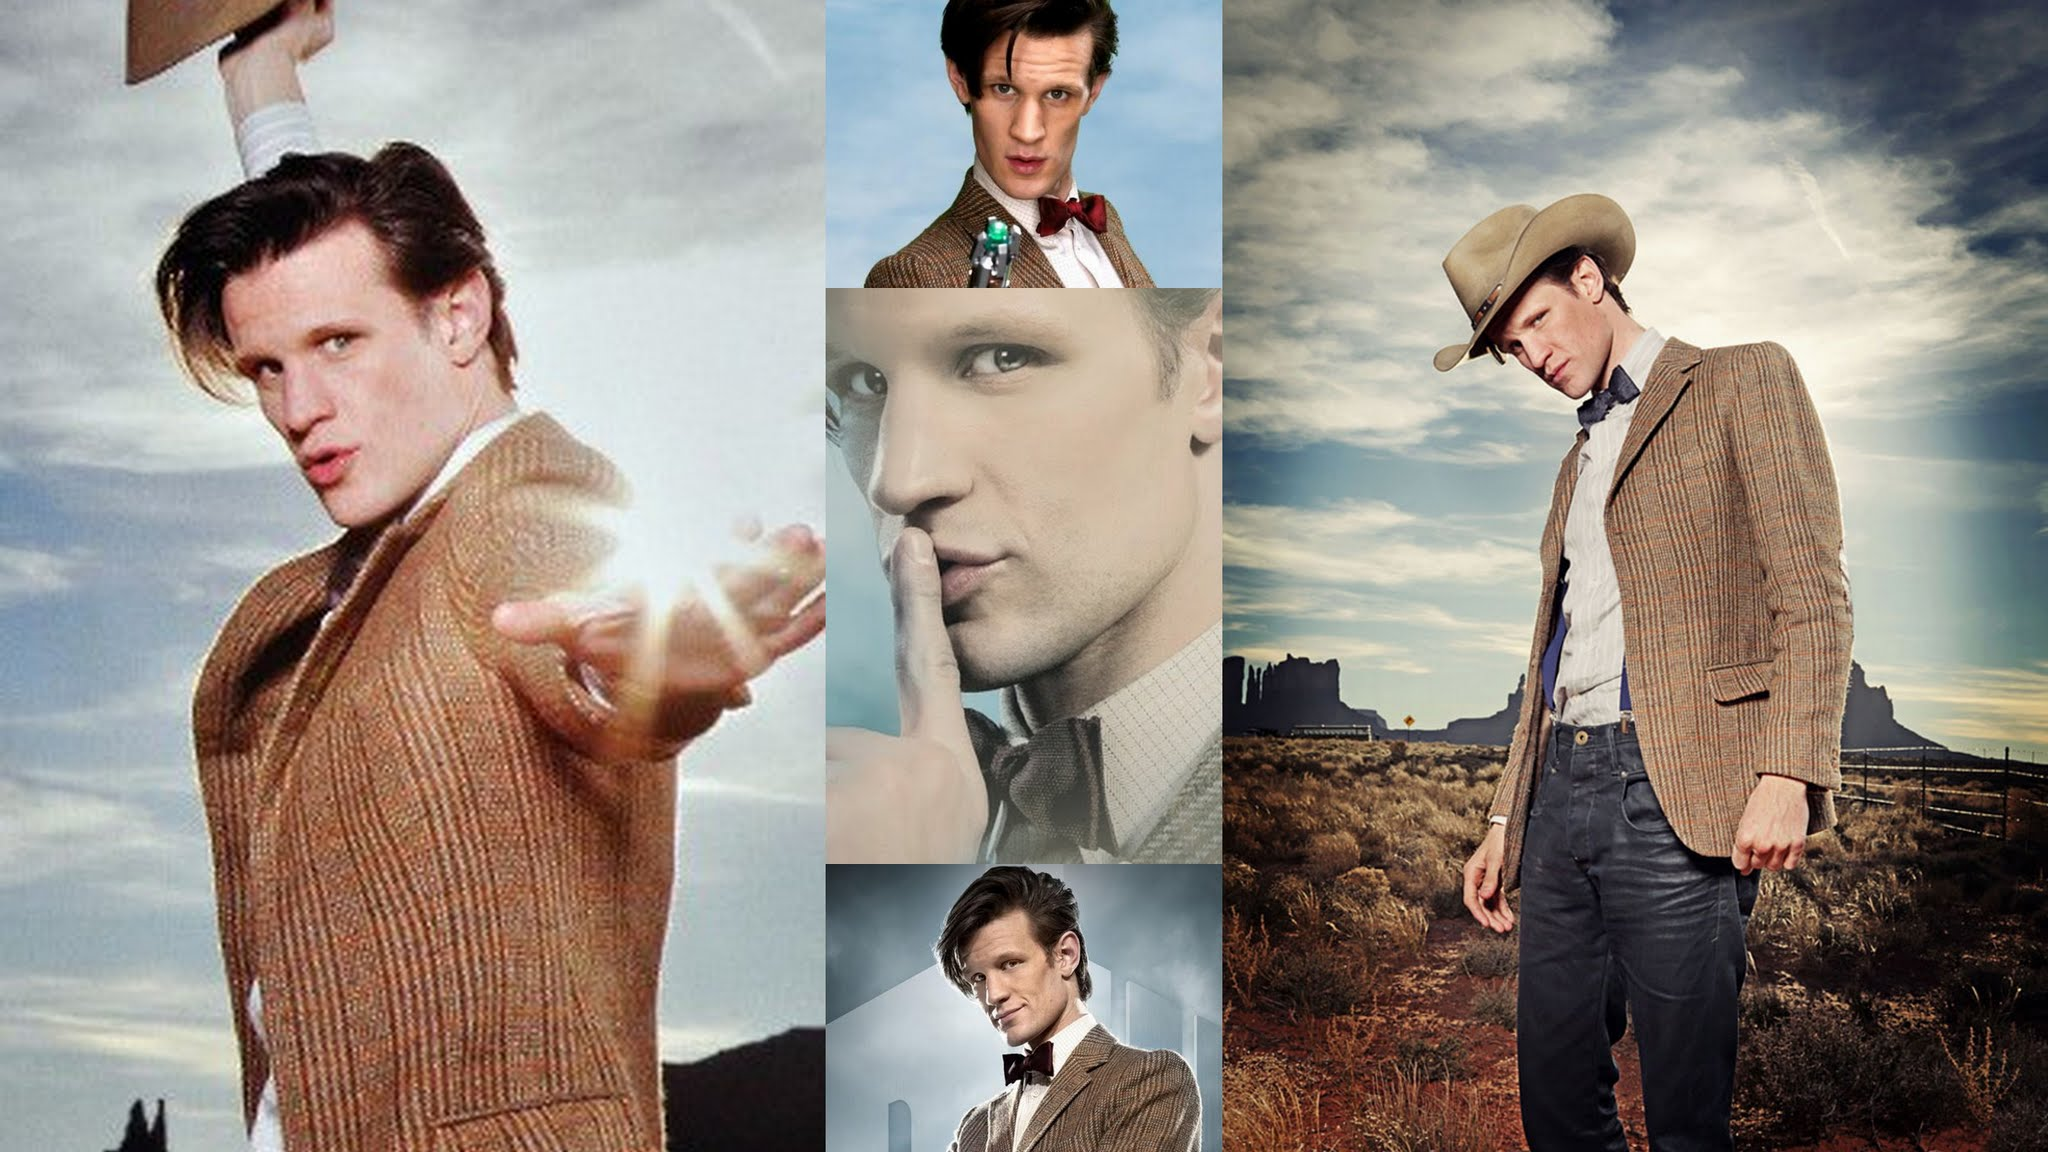 Matt Smith Wallpaper   Doctor Who Wallpaper 36316606 2048x1152